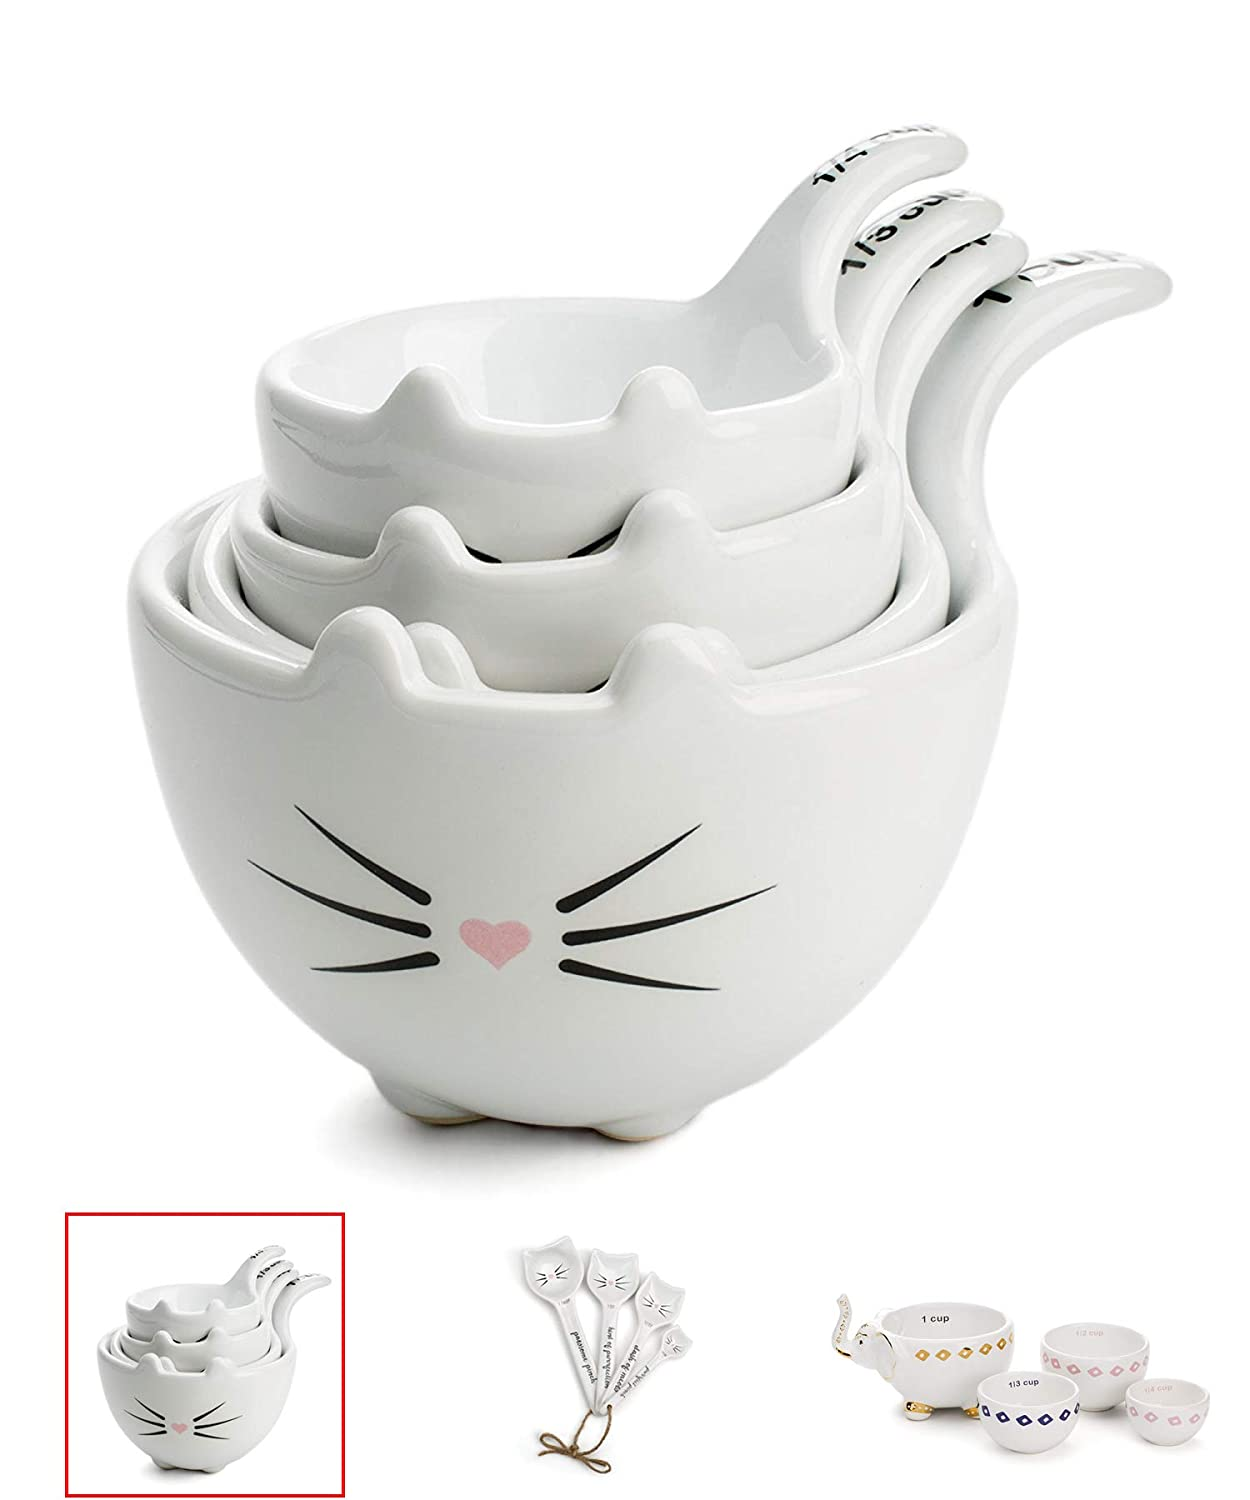 White Ceramic Cat Measuring Cups: Set of Cat Shaped Bowls - 1 Cup, 1/2 Cup, 1/3 Cup and 1/4 Cup